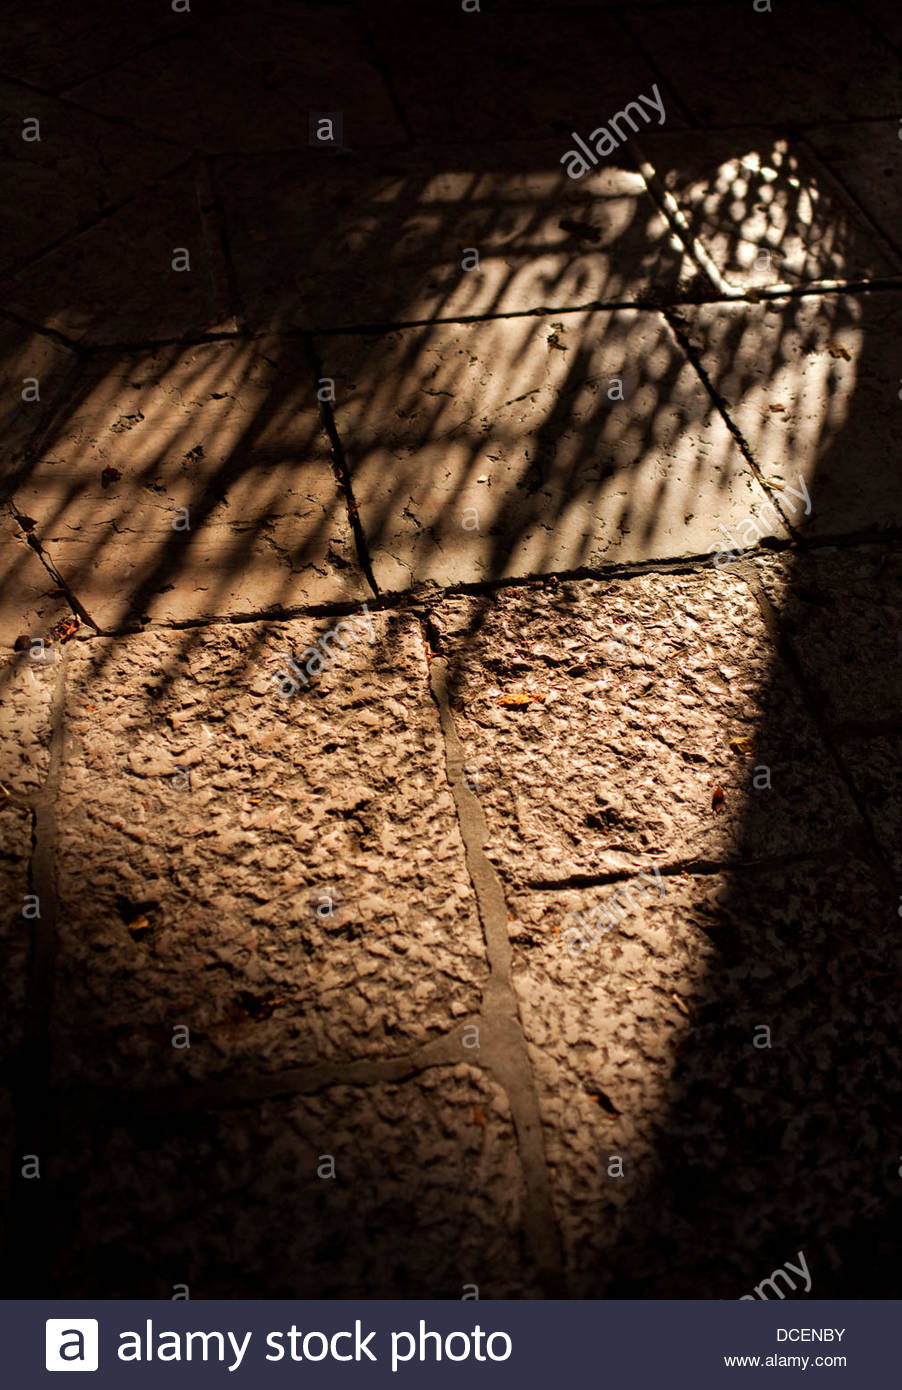 Shadow of a gate on floor - Stock Image